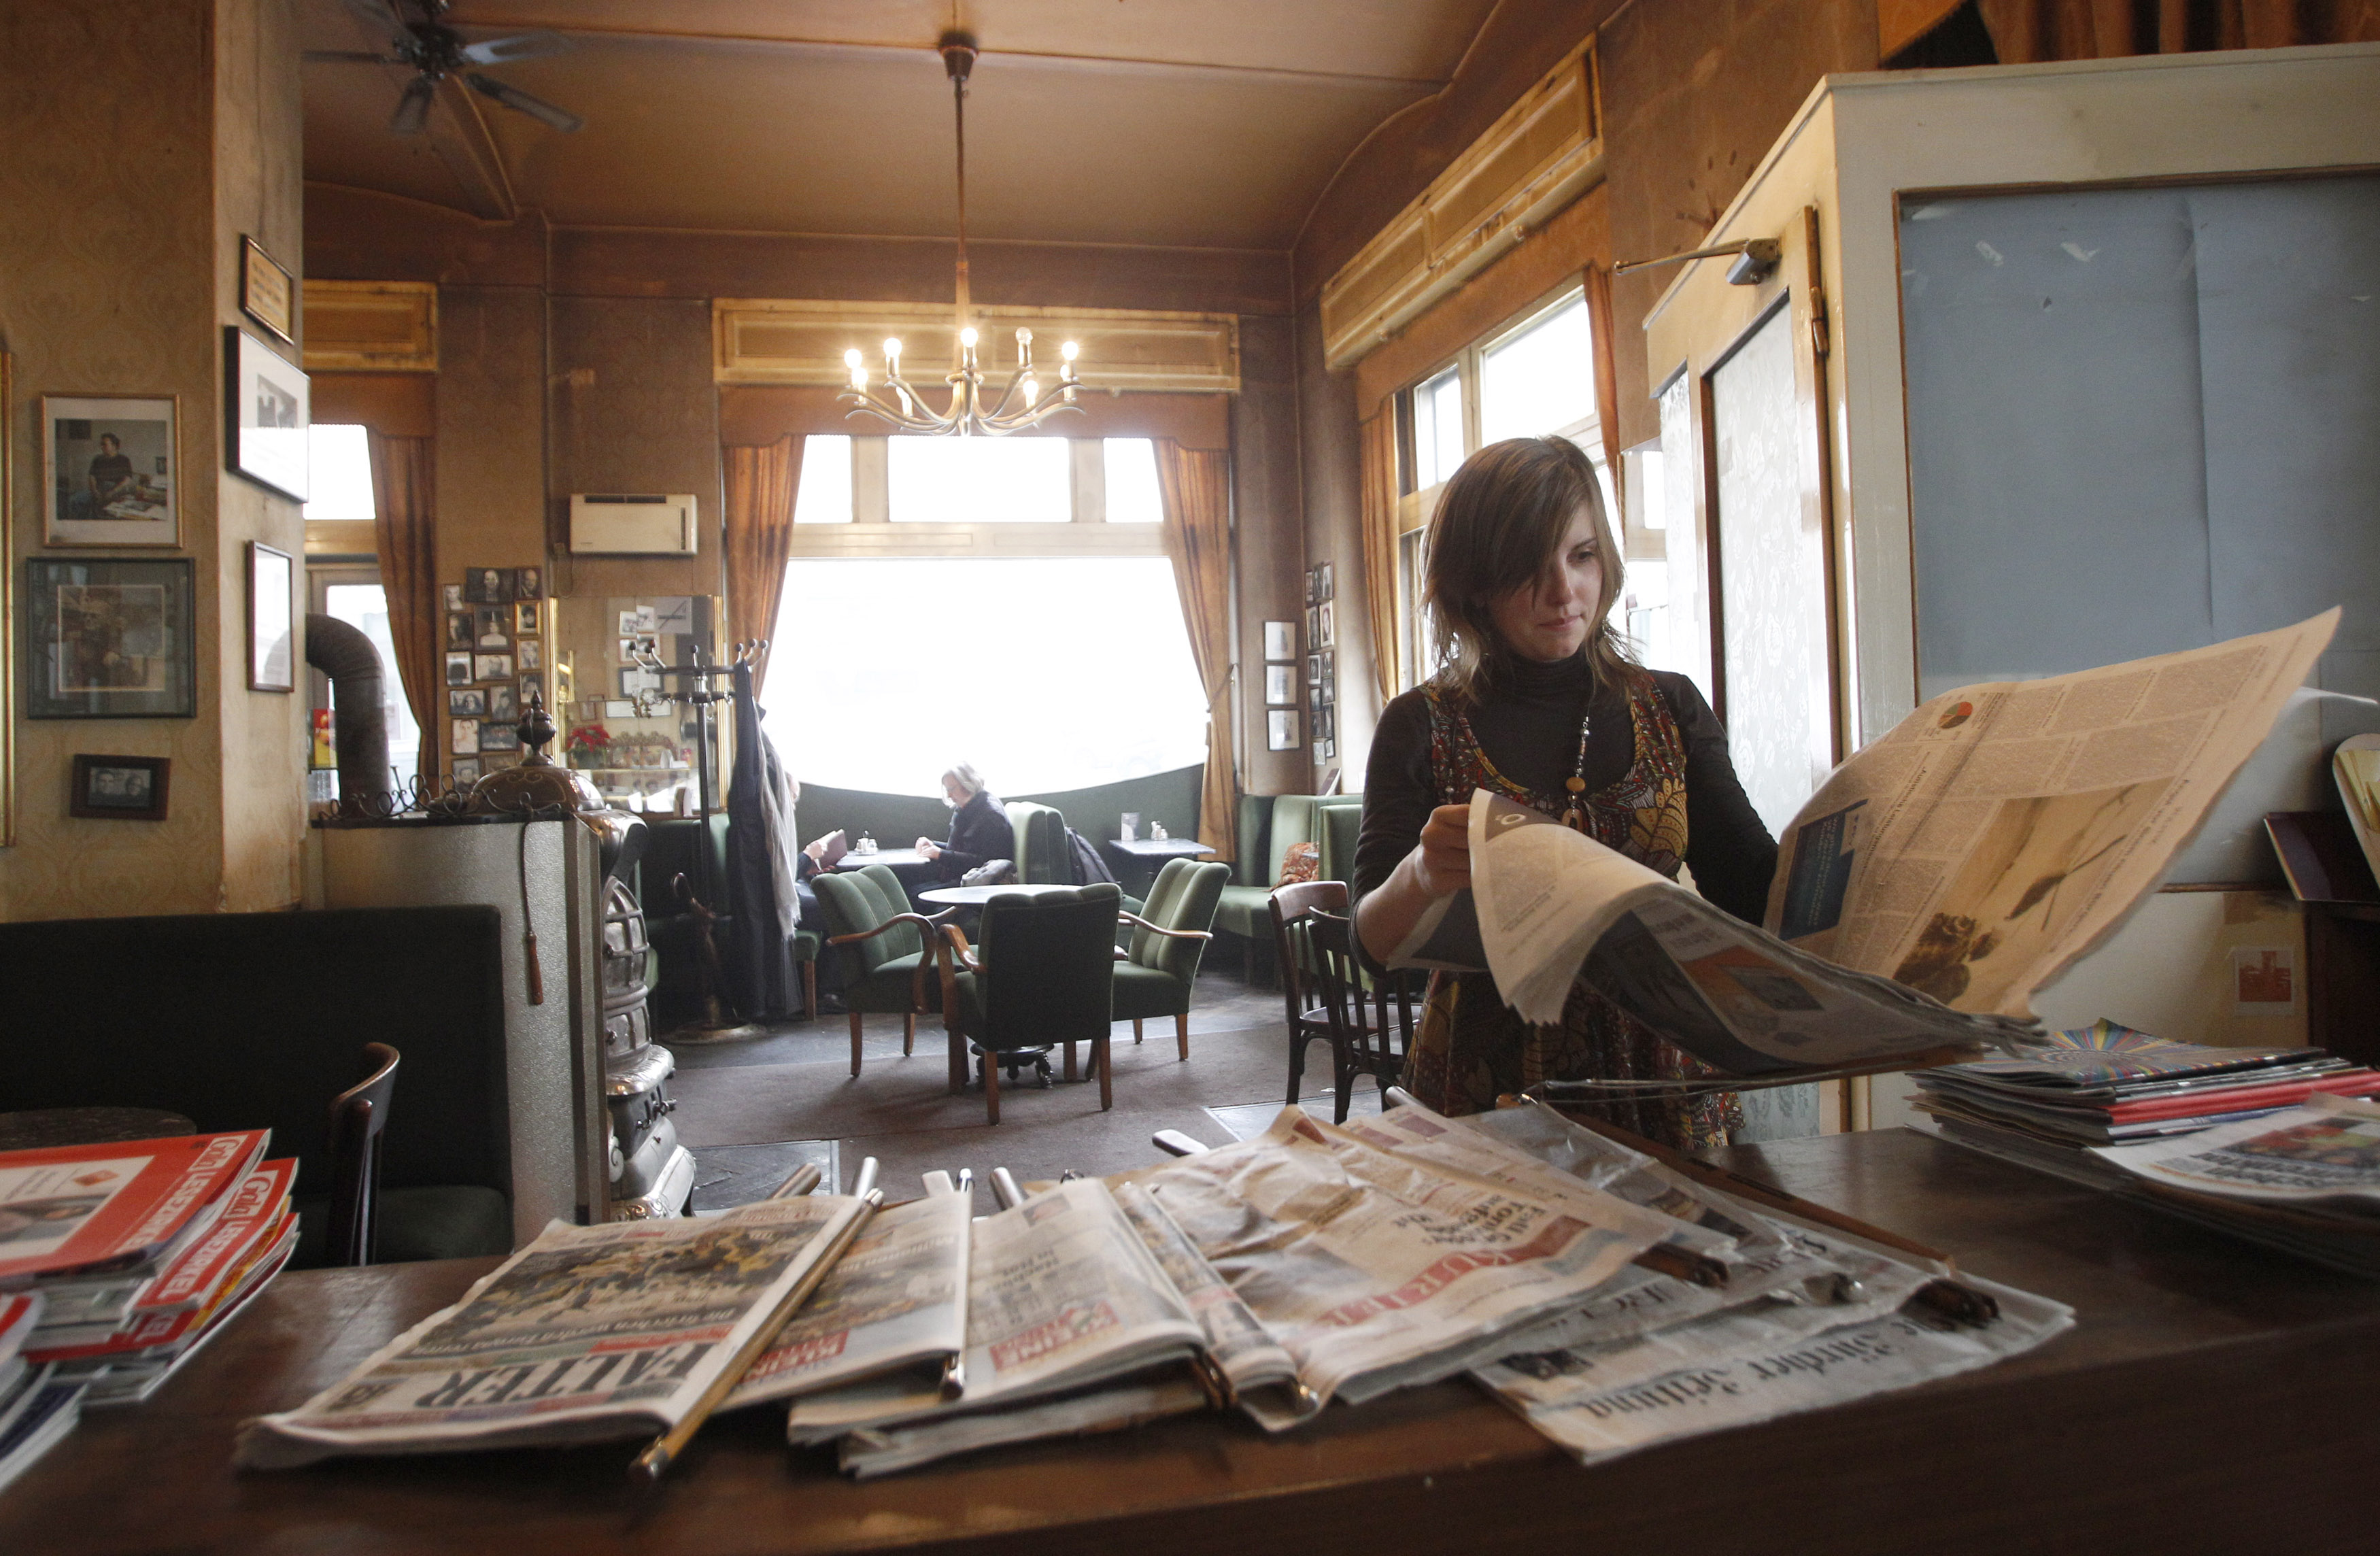 A woman reads a newspaper in the Viennese coffee house (Wiener Kaffeehaus) Jelinek in Vienna November 14, 2011. The UNESCO appointed the Viennese coffeehouse culture as an immaterial cultural heritage on November 10. Picture taken November 14, 2011.  REUTERS/Lisi Niesner (AUSTRIA - Tags: ENTERTAINMENT SOCIETY) - RTR2U1PT related words: cafe, newspaper, Vienna, Austria